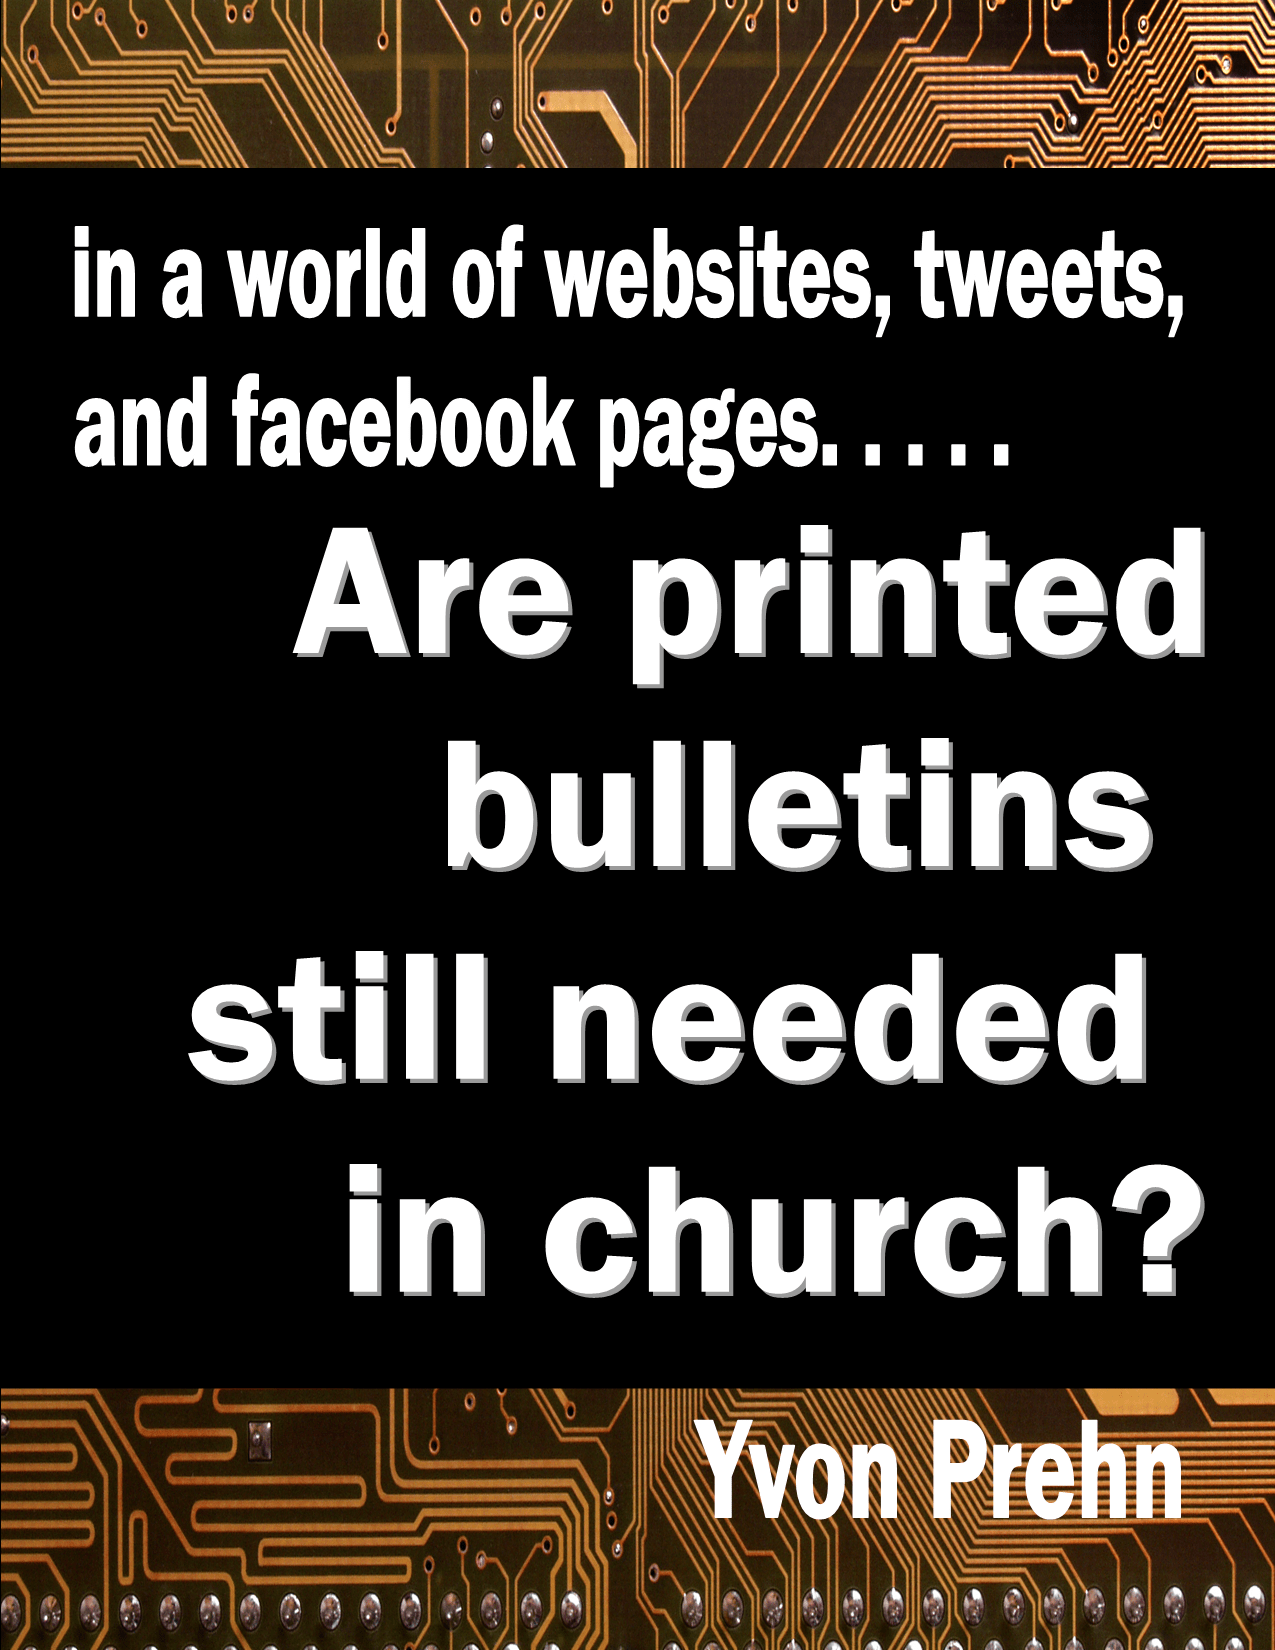 What do you think of this short article I wrote for my church bulletin?